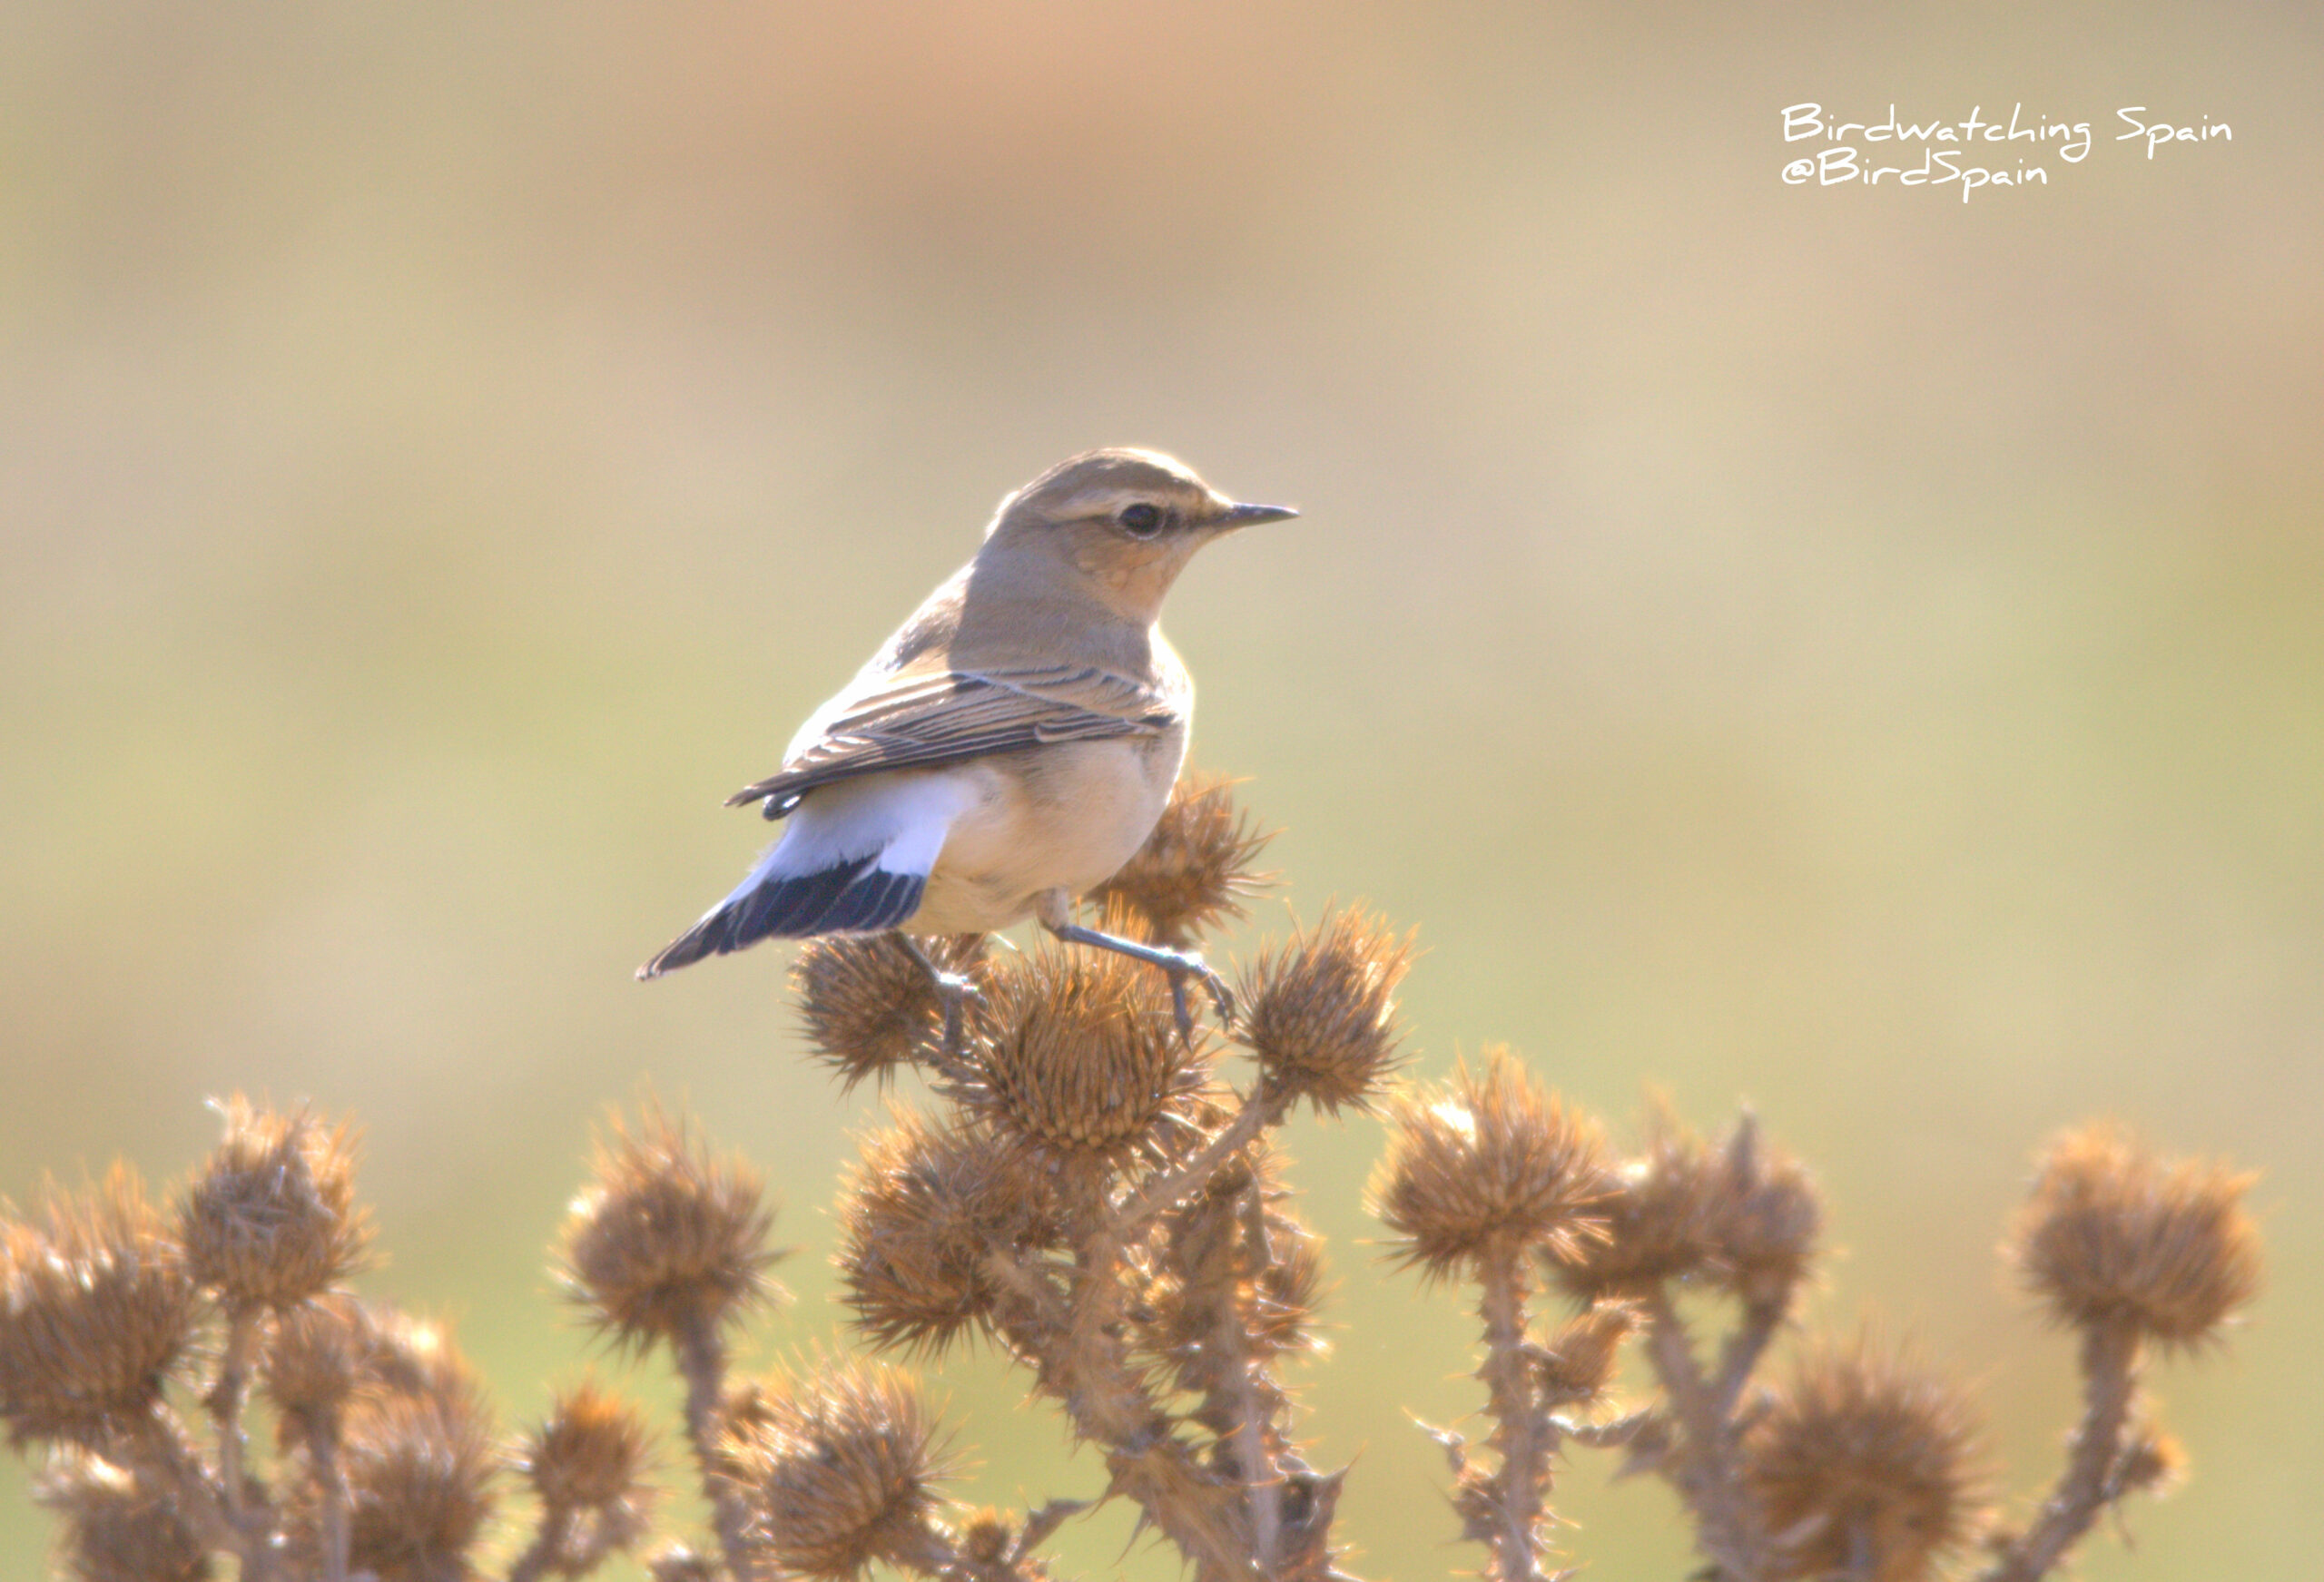 Gallocanta trip report-wheatear